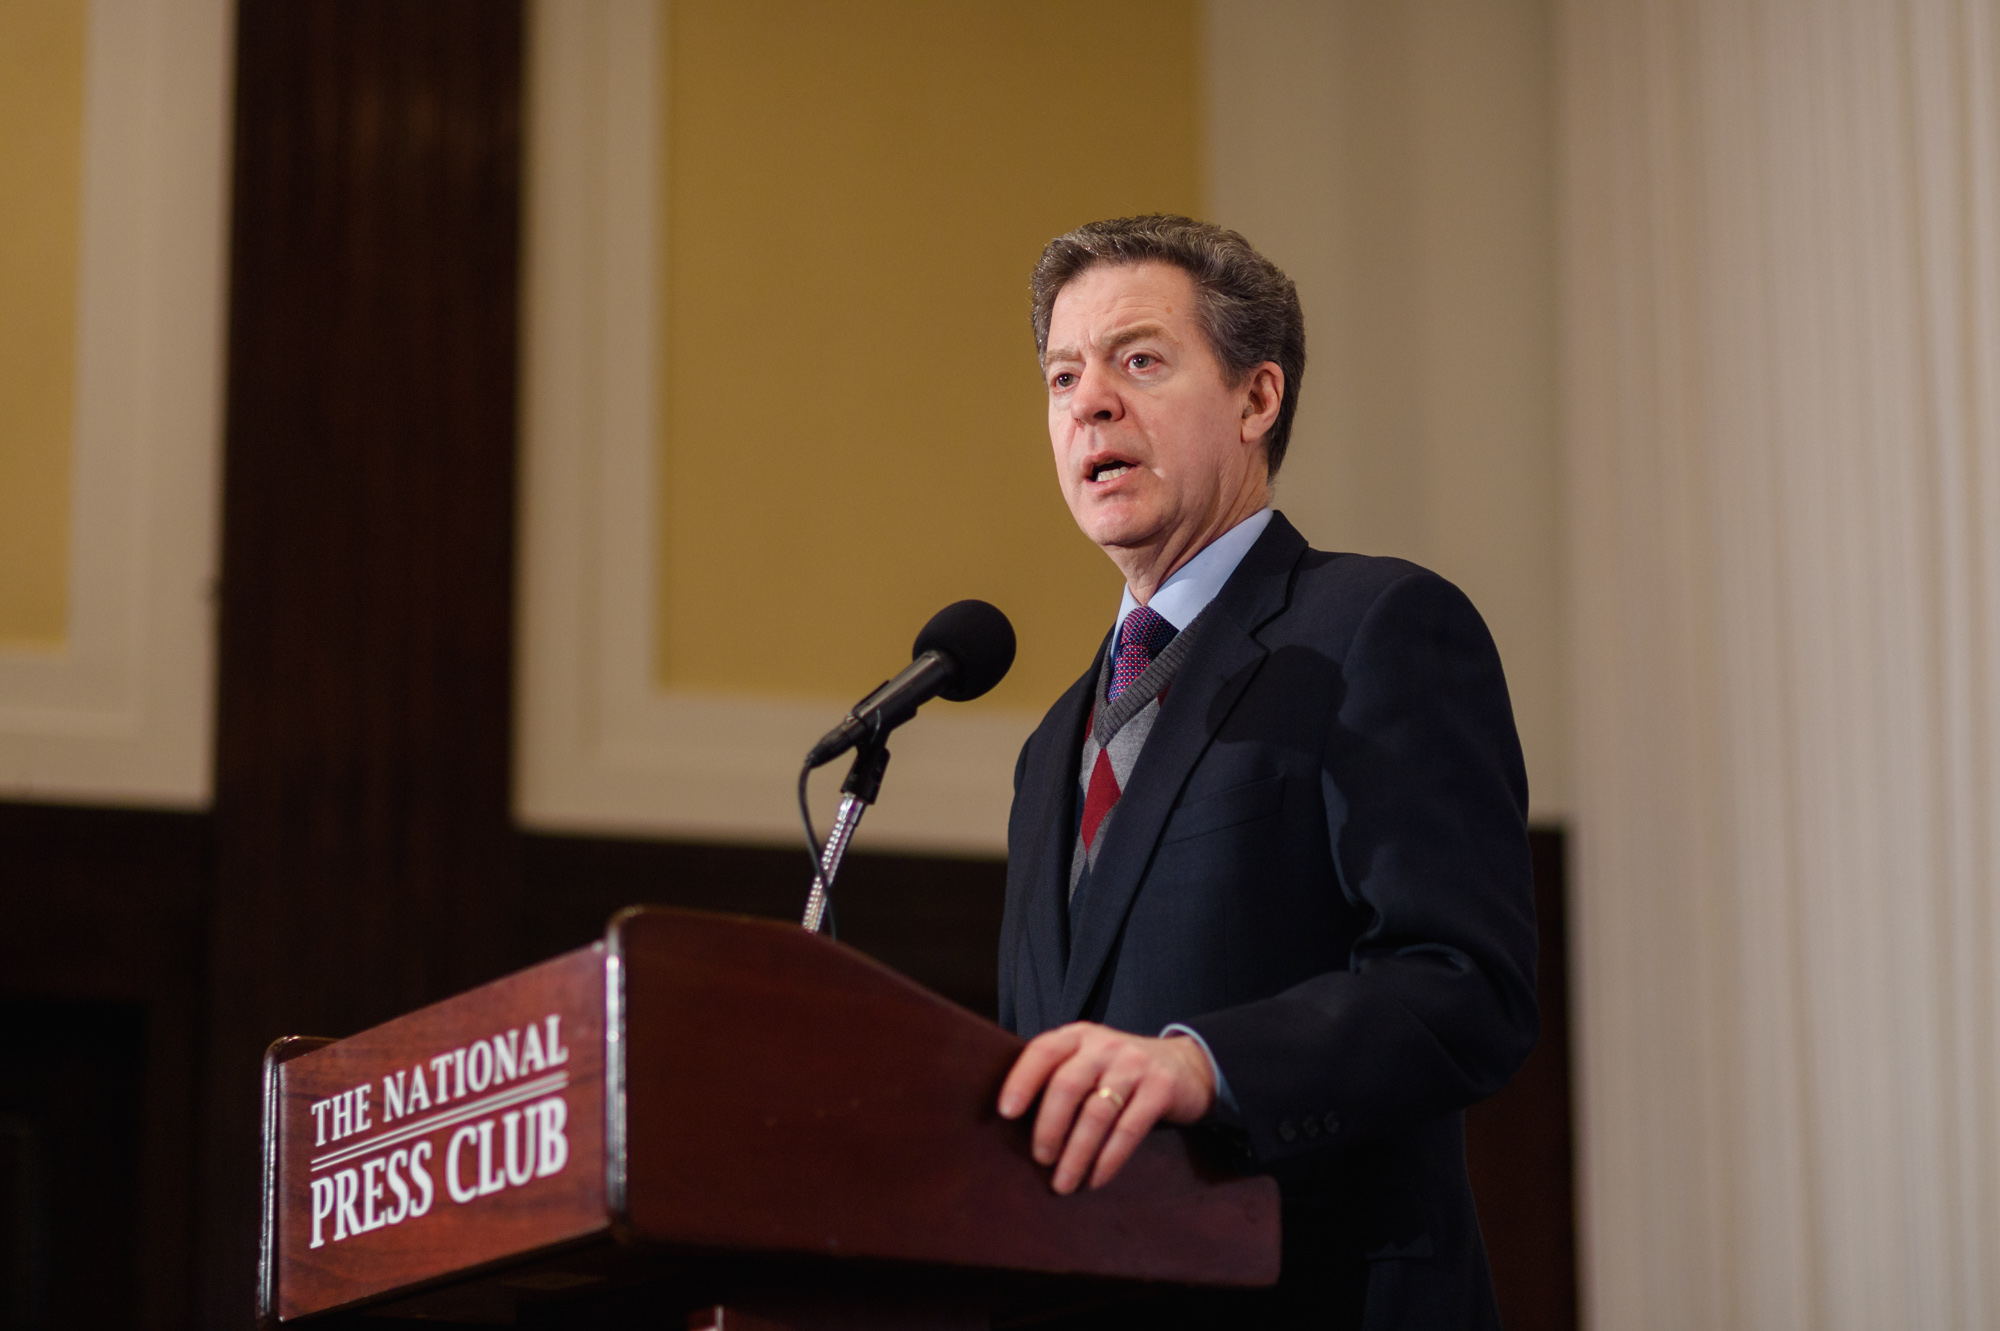 098 - February 12th 2019 Religious Freedom Institute at National Press Club - Photo Nathan Mitchell.jpg